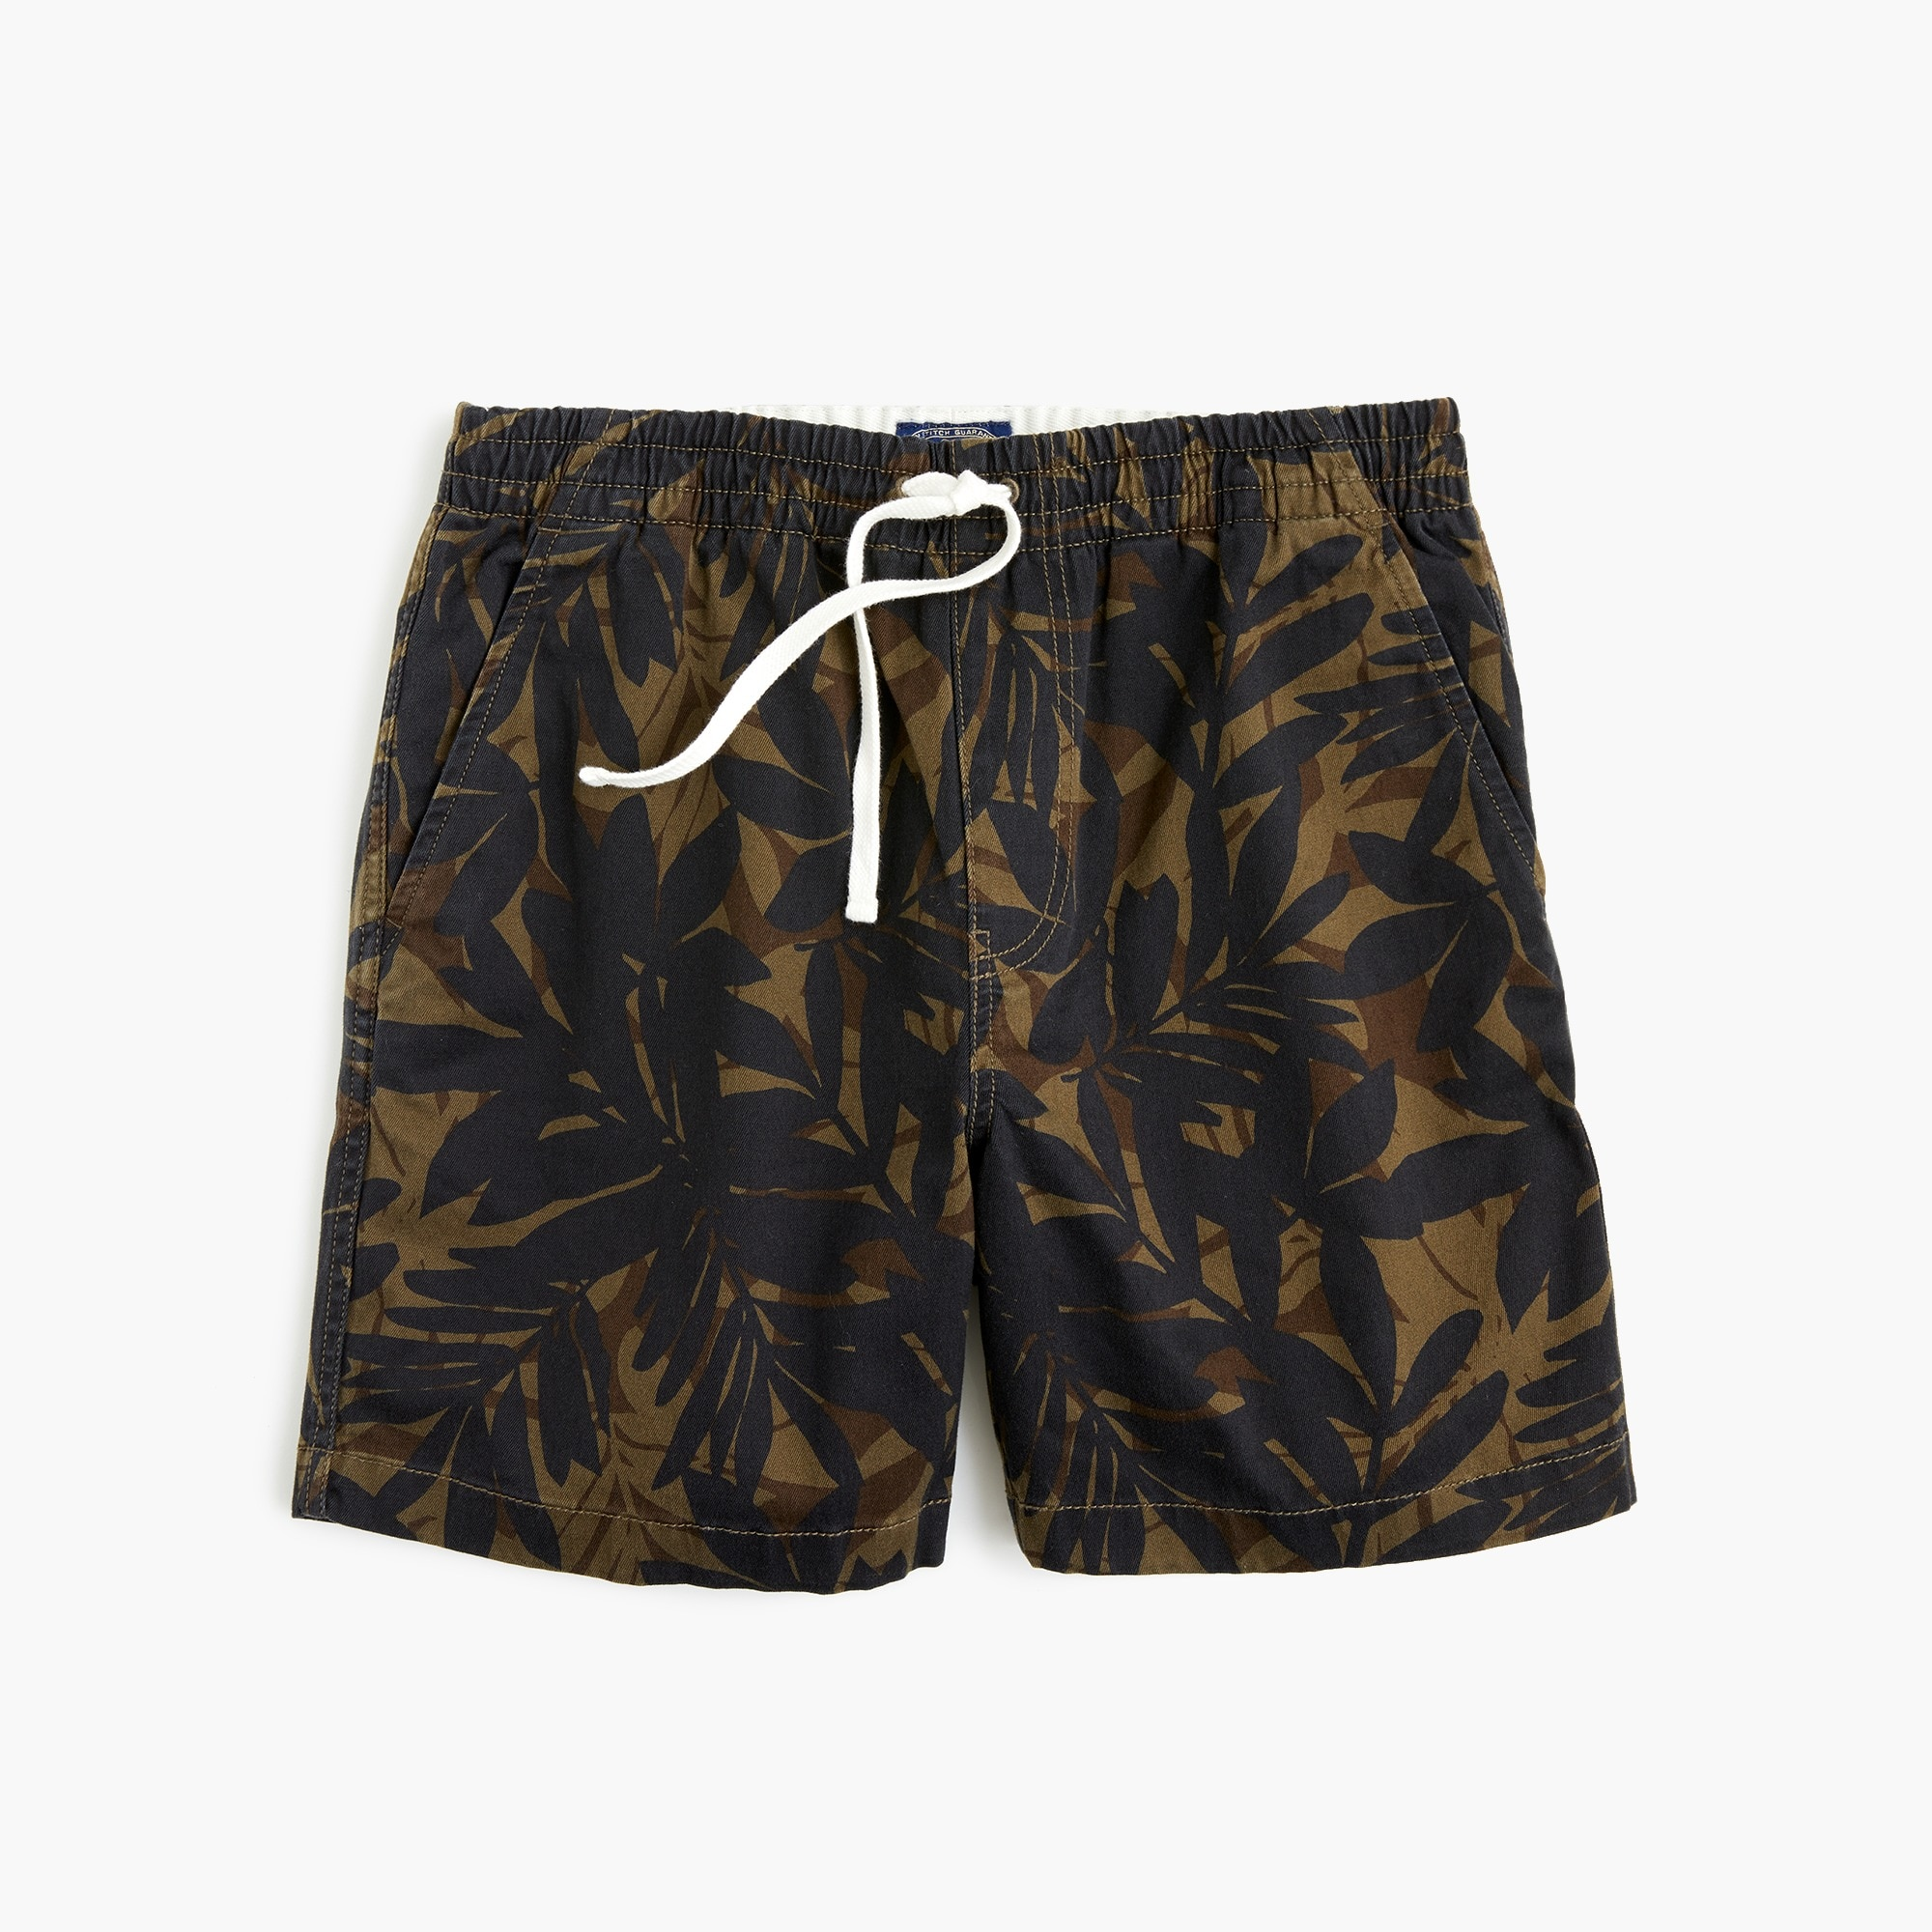 Image 1 for Stretch dock short in cotton camo